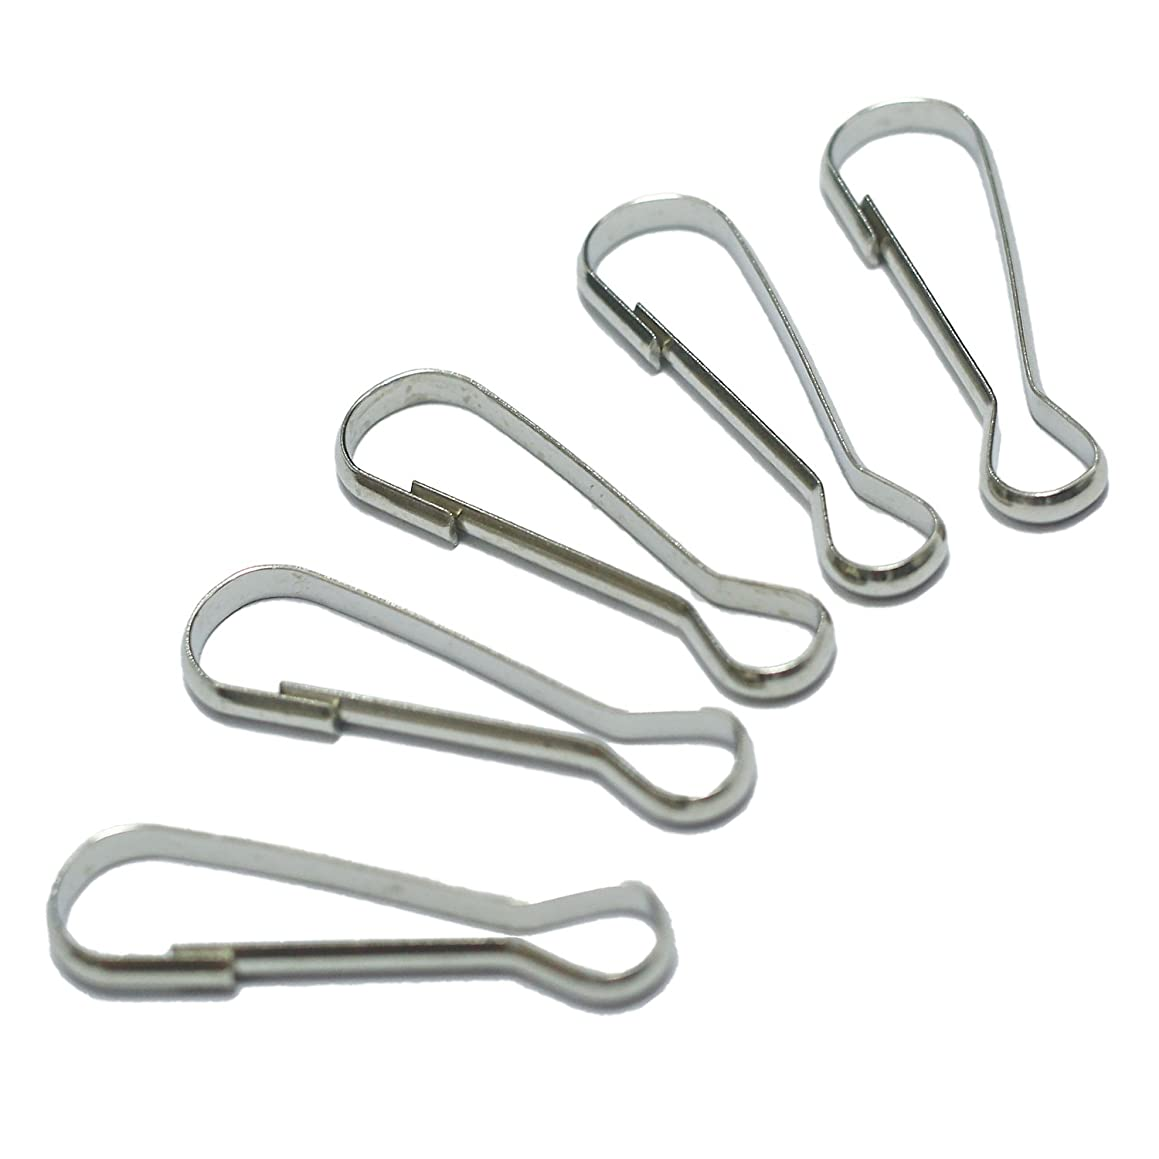 Inton 200 Pcs - Metal Spring Hooks Purse Pulis Snap Clip for Lanyard Zipper Pull Id Card (25mm, Nickel)